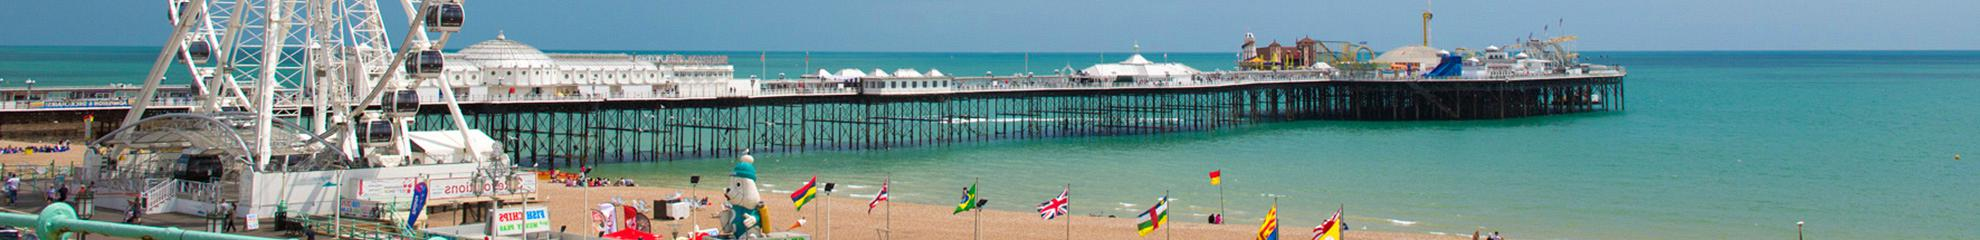 Vacanze studio inglese adulti Brighton